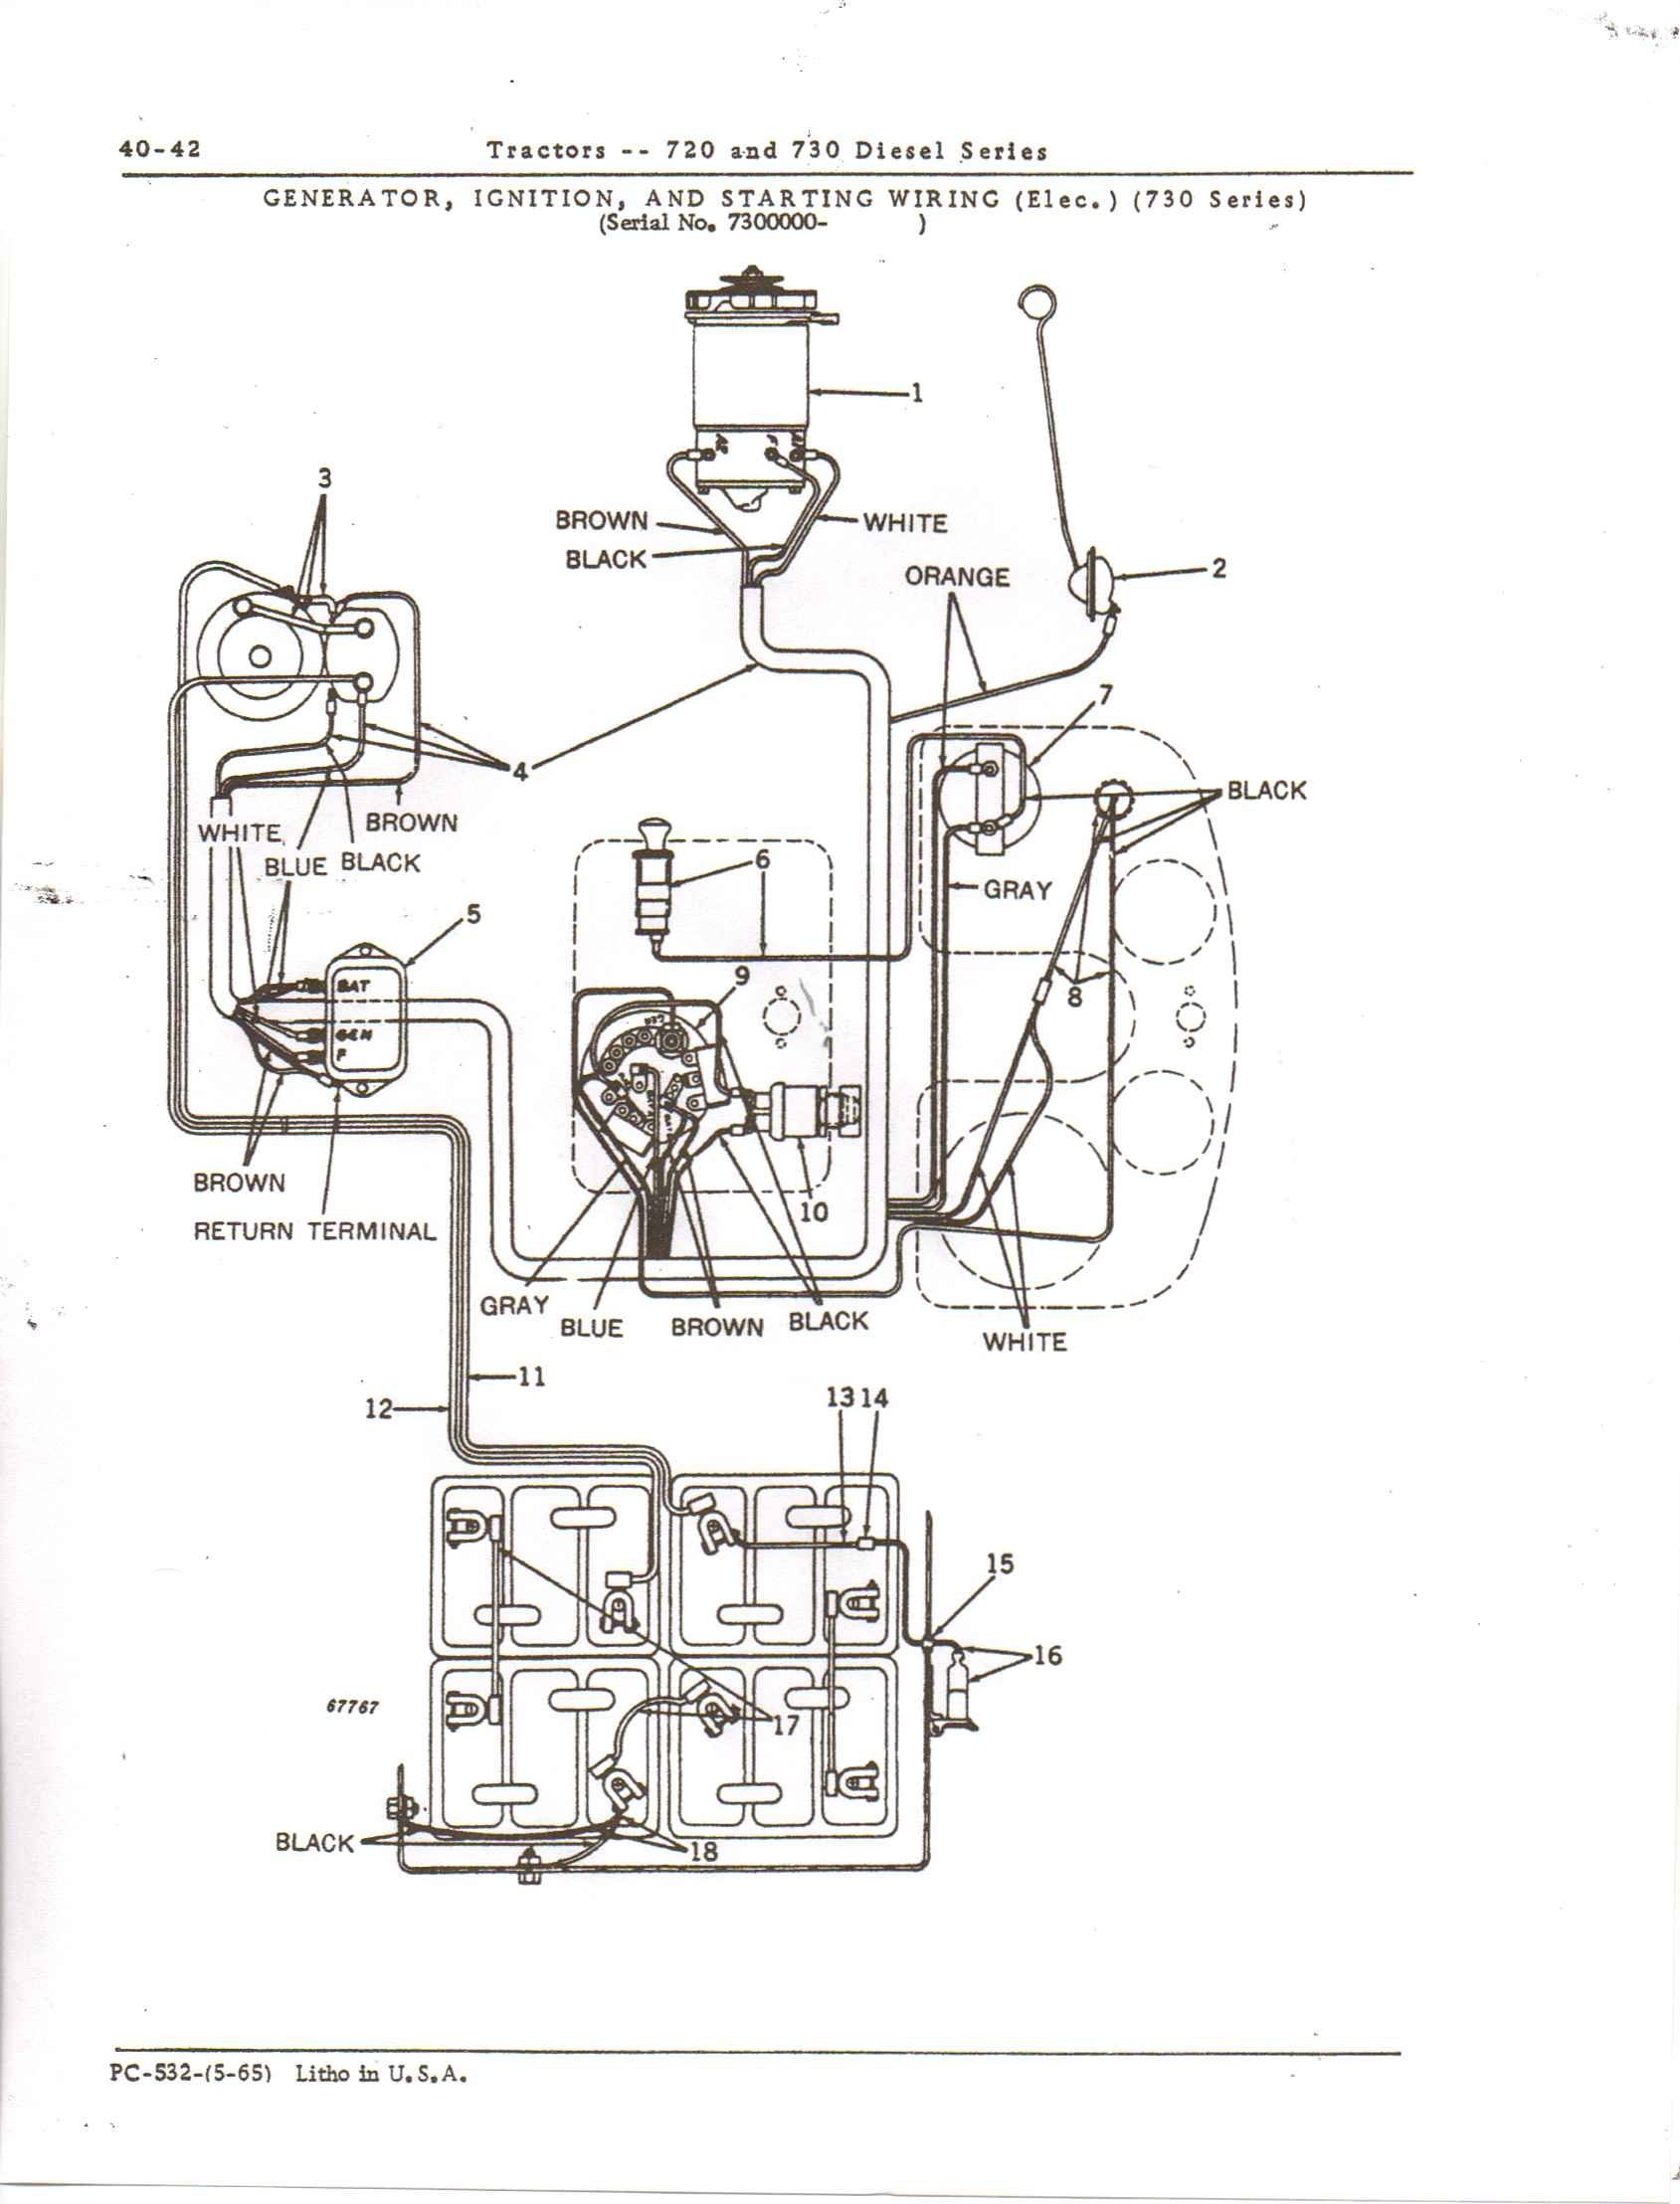 hight resolution of john deere lawn mower wiring diagram